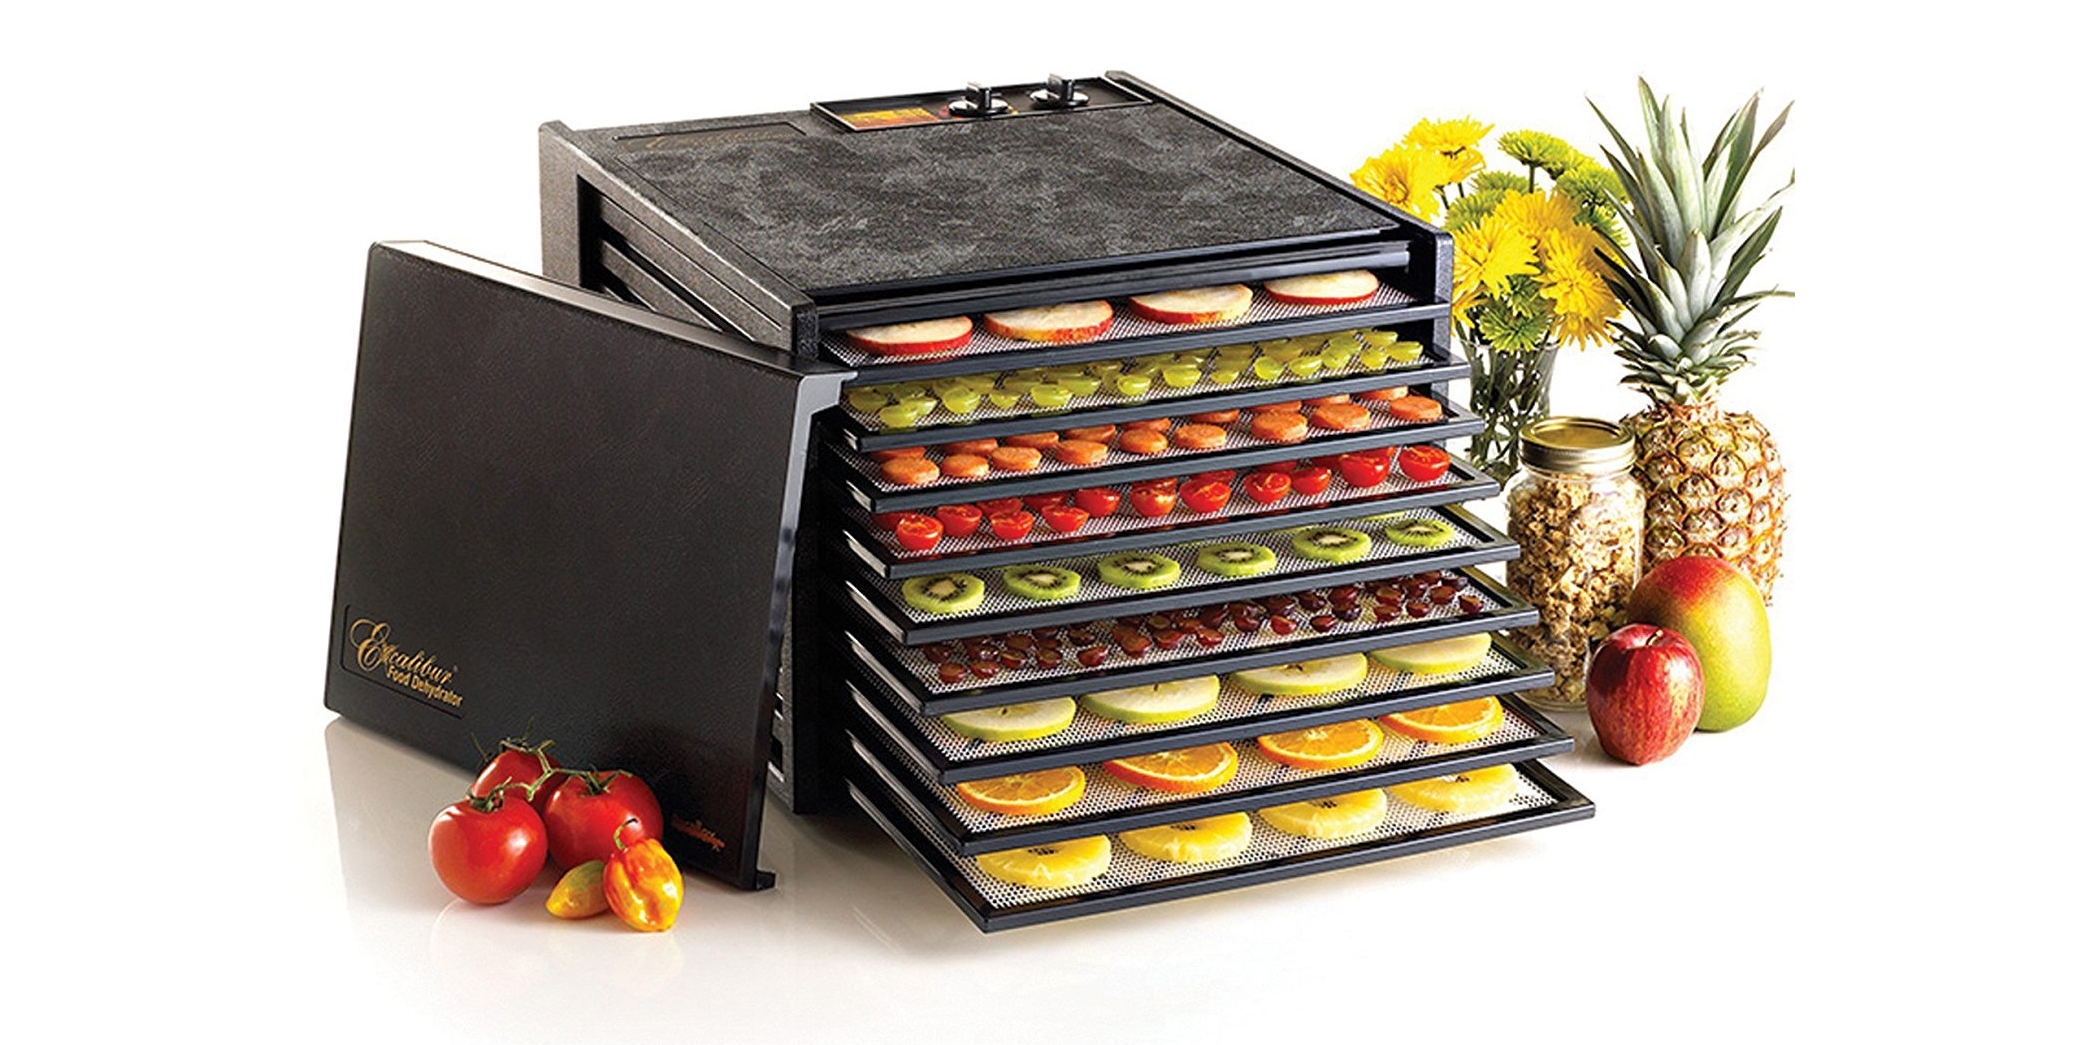 This Excalibur 9-Tray Food Dehydrator has a built-in 26-hour timer, now $192 (Reg. $300+)